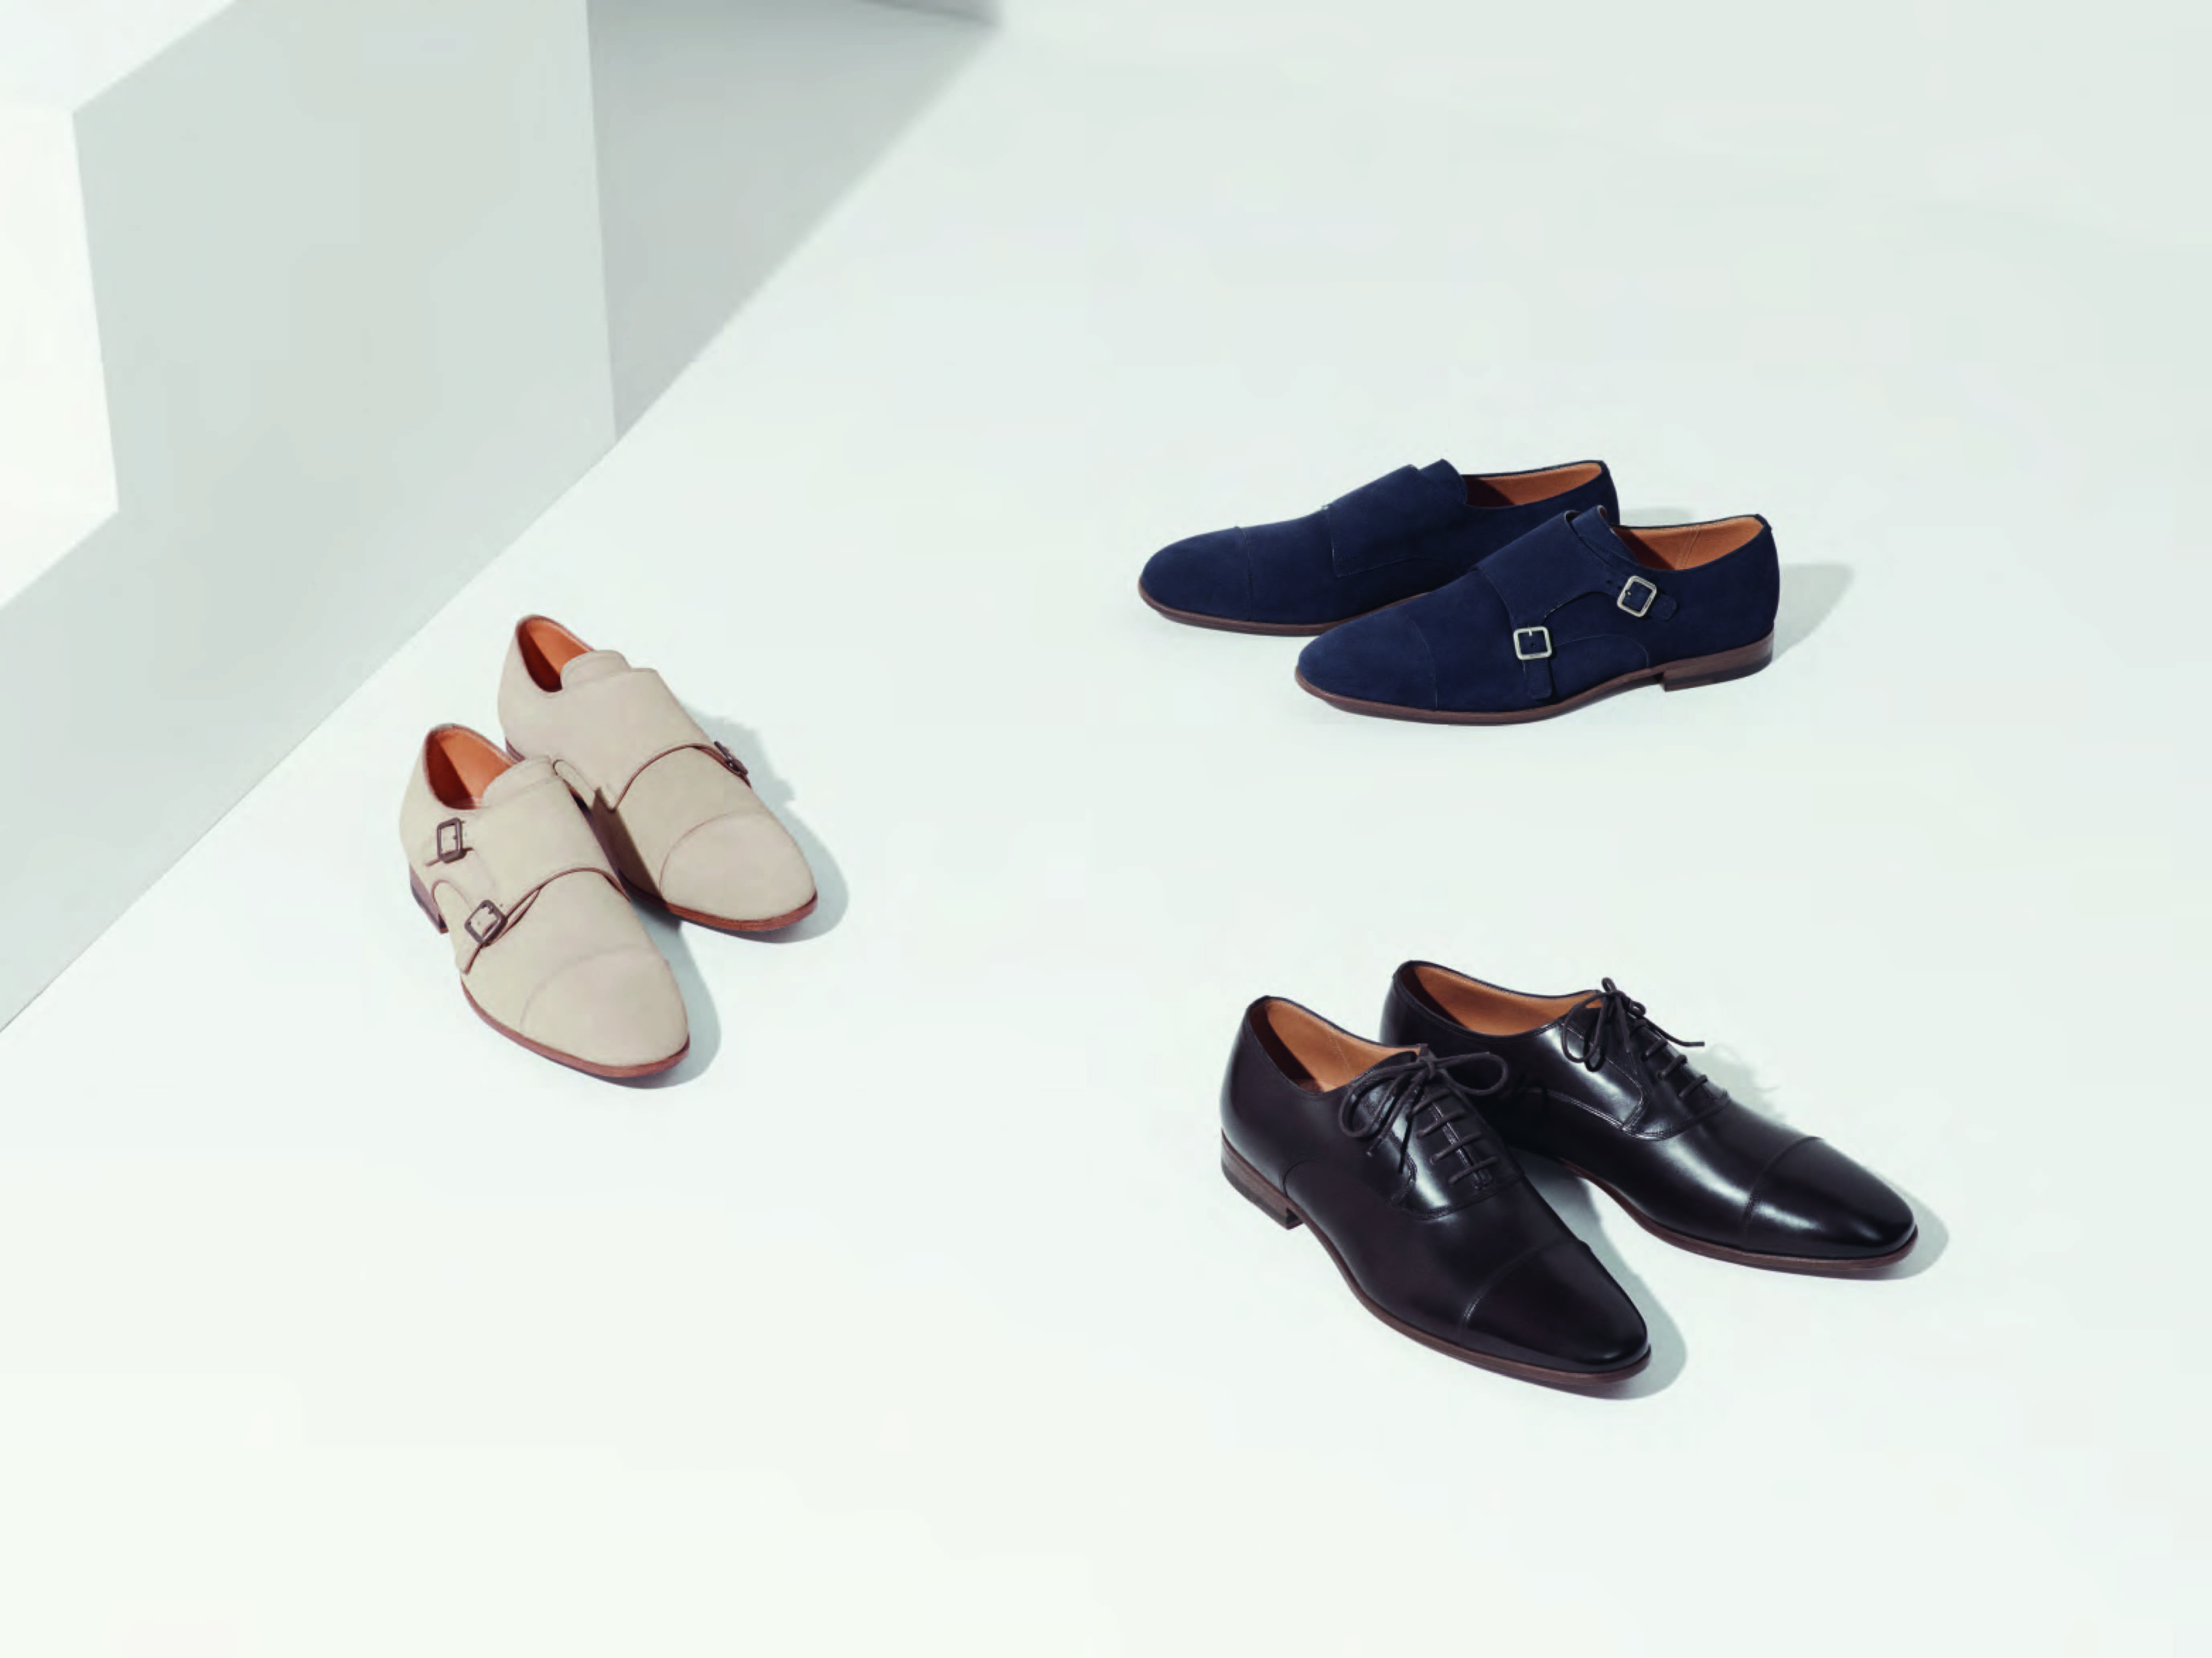 Bally S Spring Summer 2014 Men S Shoes Collection Www Bally Com Dress Shoes Men Shoe Collection Men S Shoes [ 4131 x 5512 Pixel ]